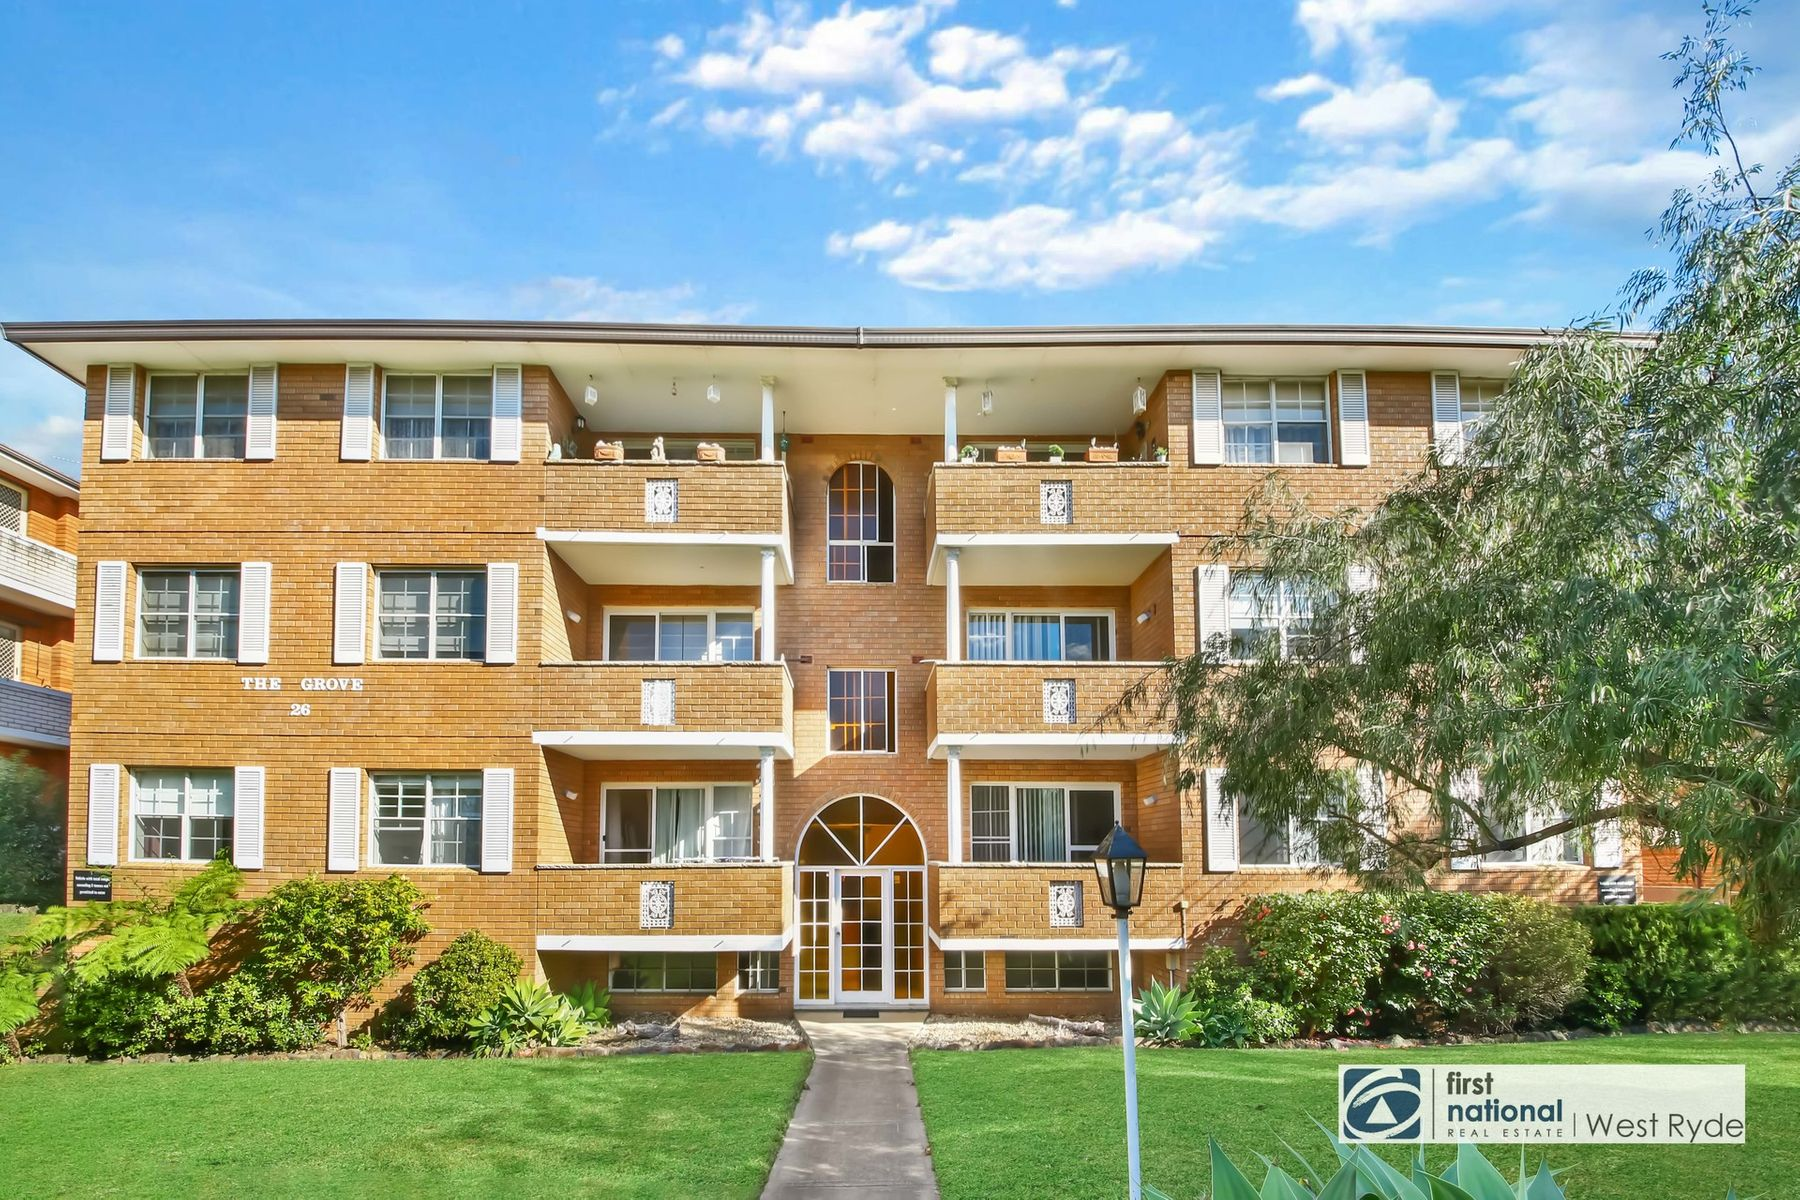 14/26-28 Orchard Street, West Ryde, NSW 2114